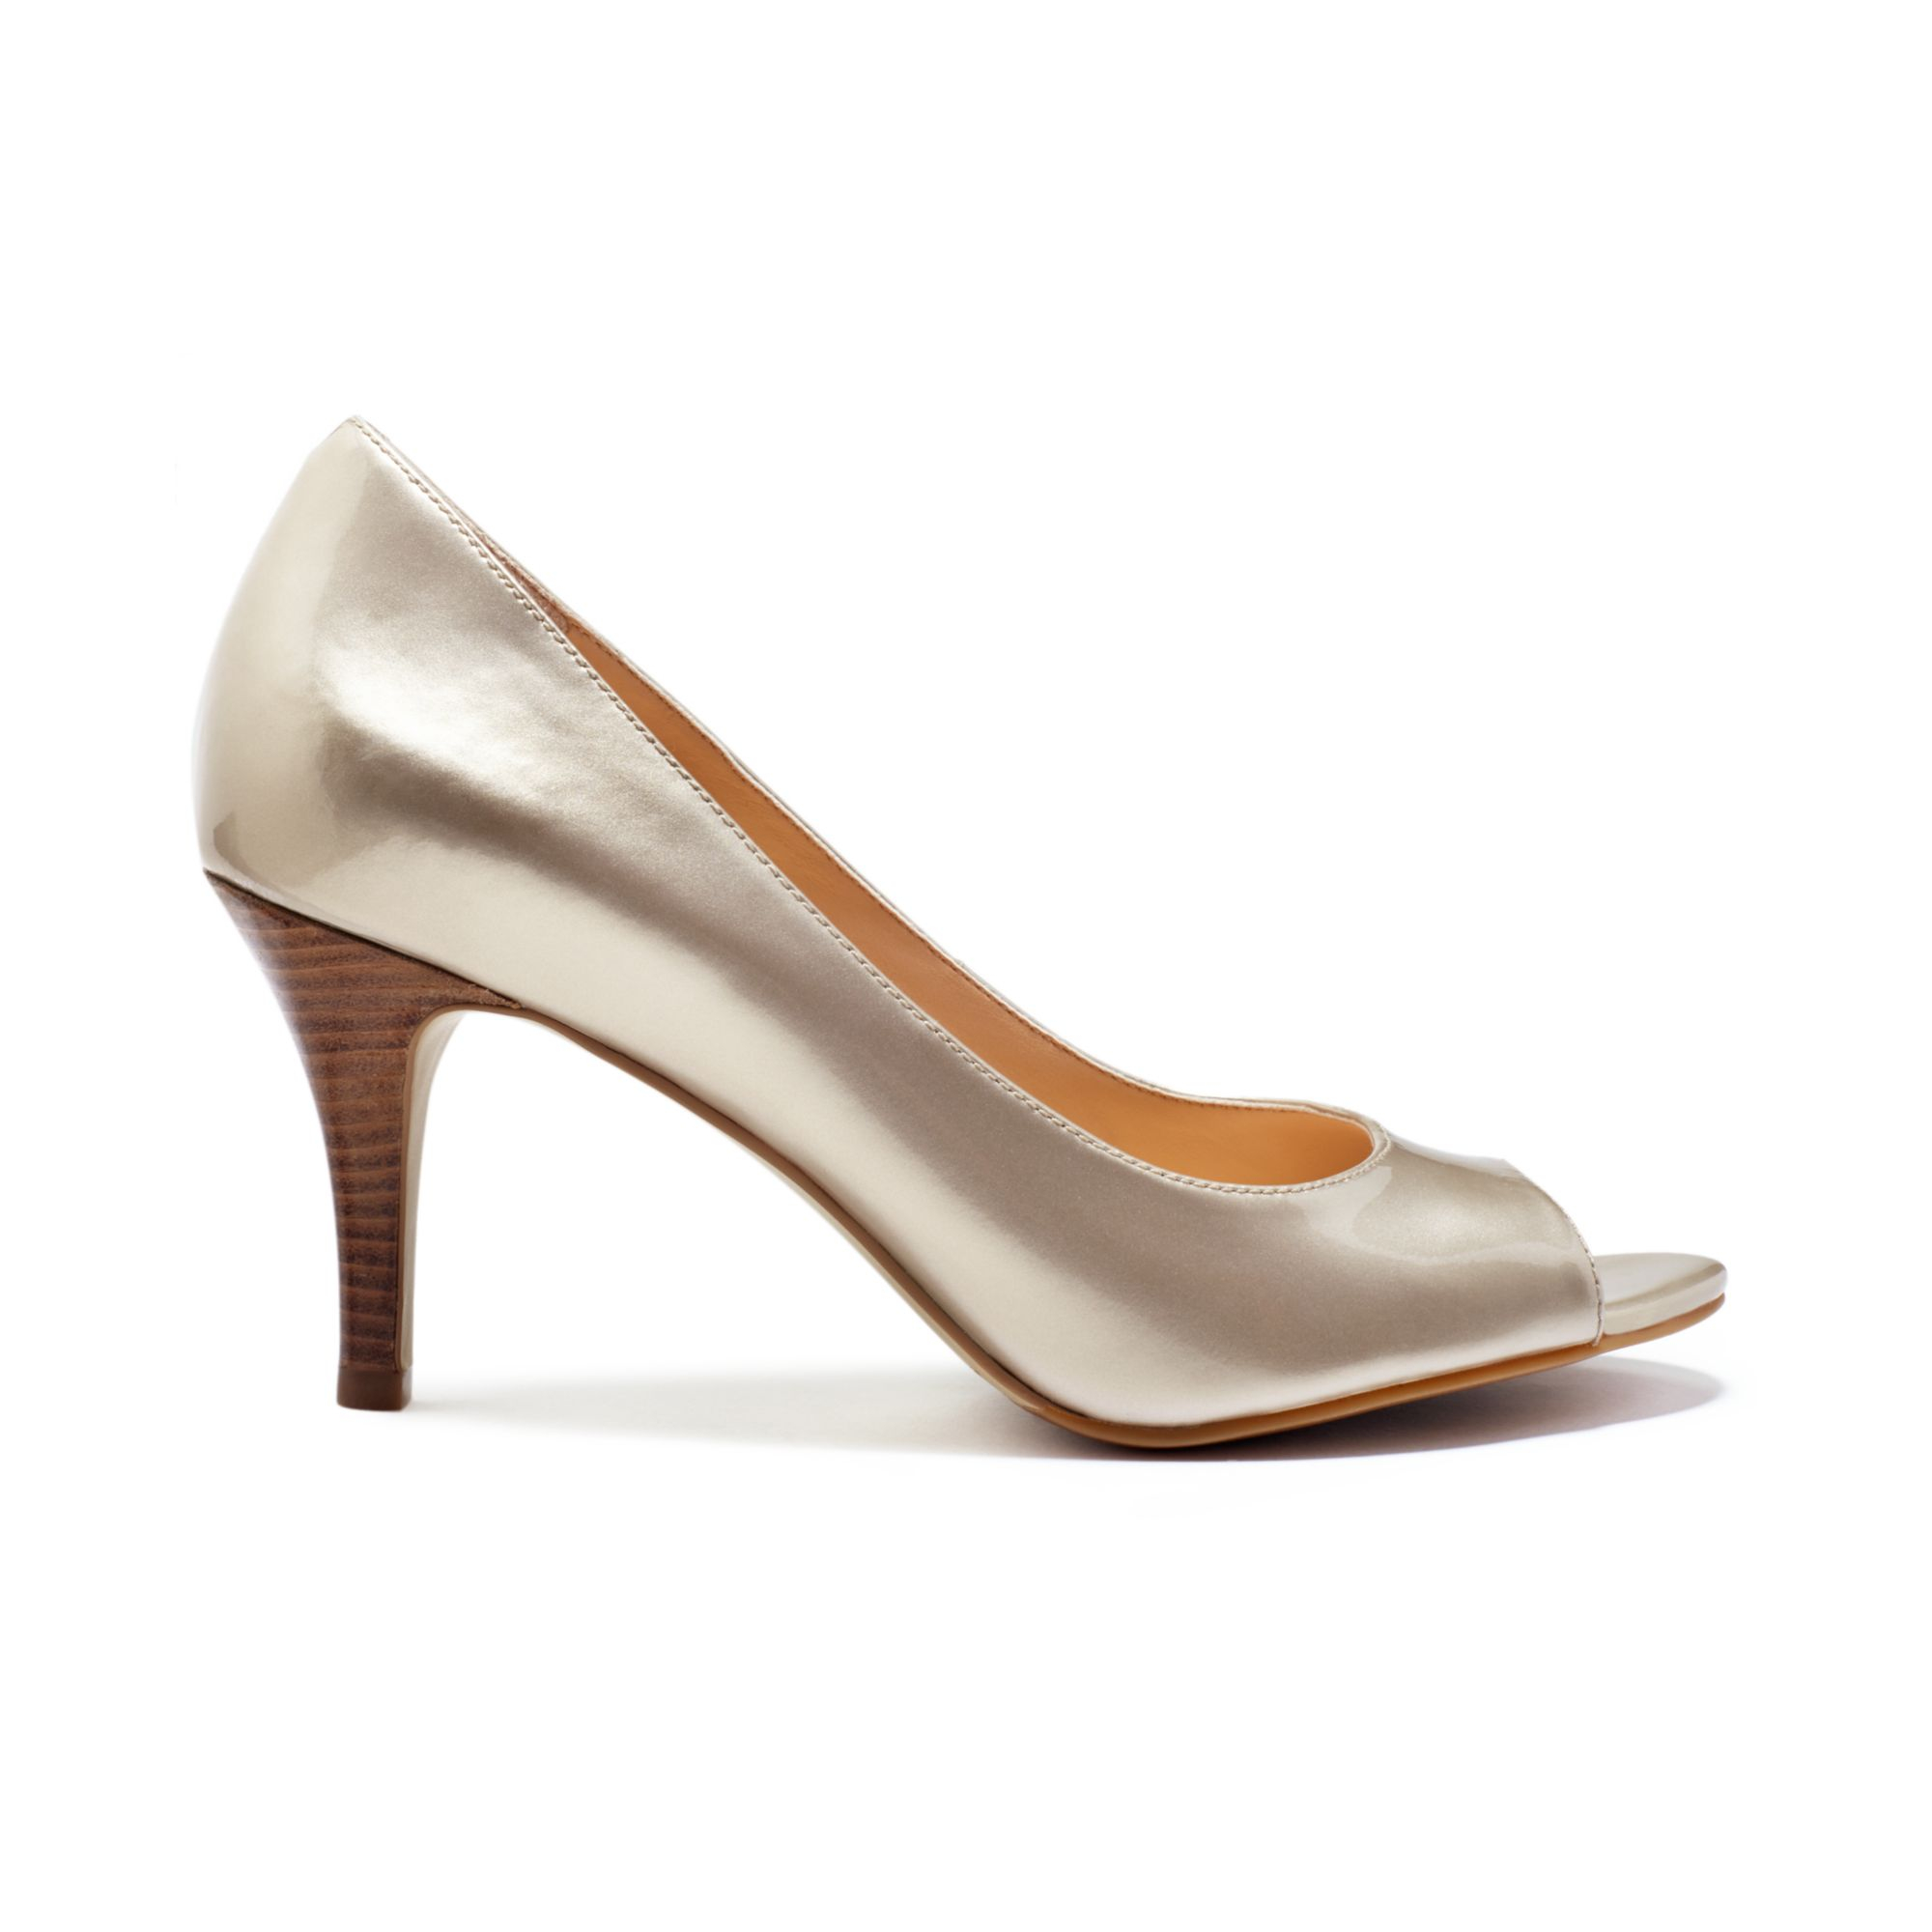 20182017 Pumps Cole Haan Womens Air Lainey Pump On Clearance